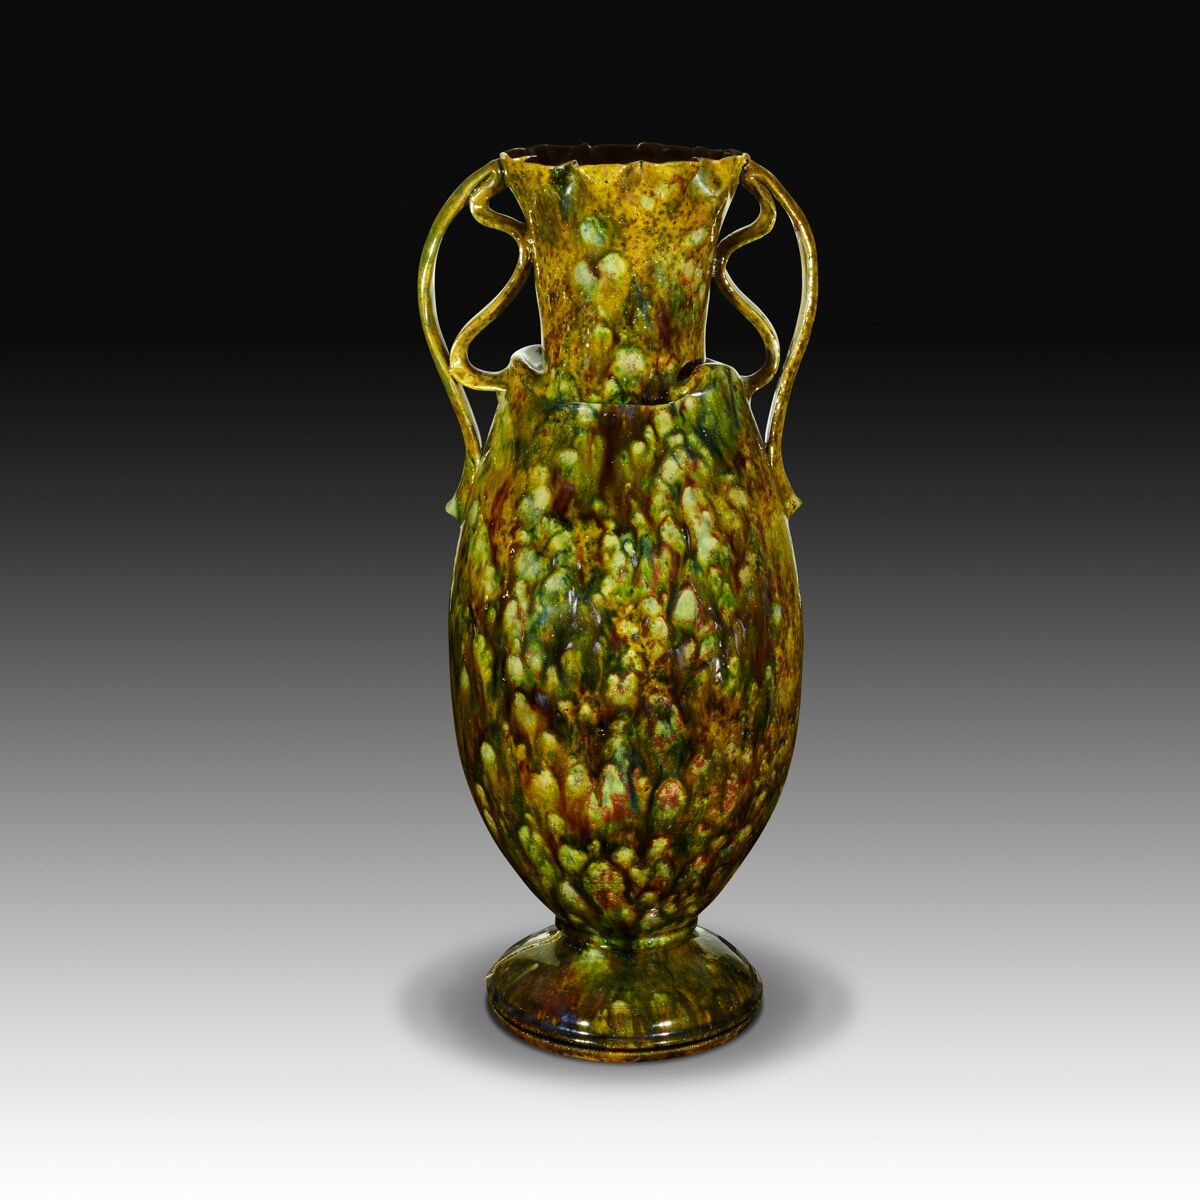 George Ohr, Very tall, mottled two-handled vase, 1895–c. 1900. Courtesy of the Collection of Marty and Estelle Shack. Photo by Phillip Ennis.